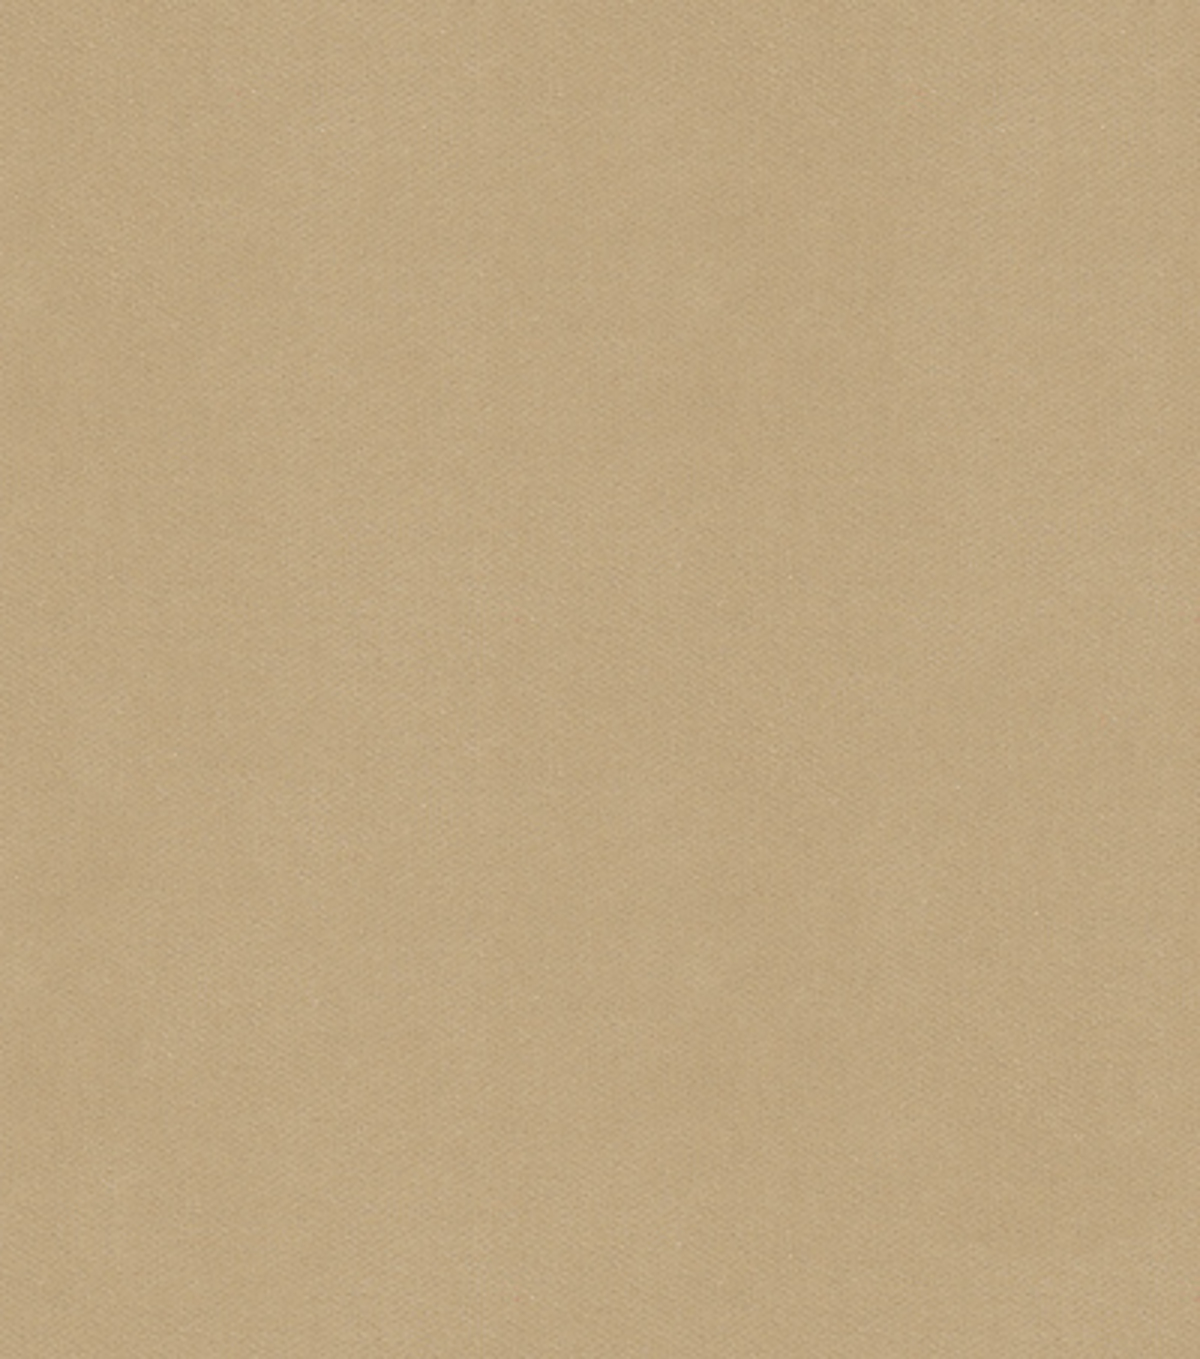 Home Decor 8\u0022x8\u0022 Fabric Swatch-Como-198-Cashmere